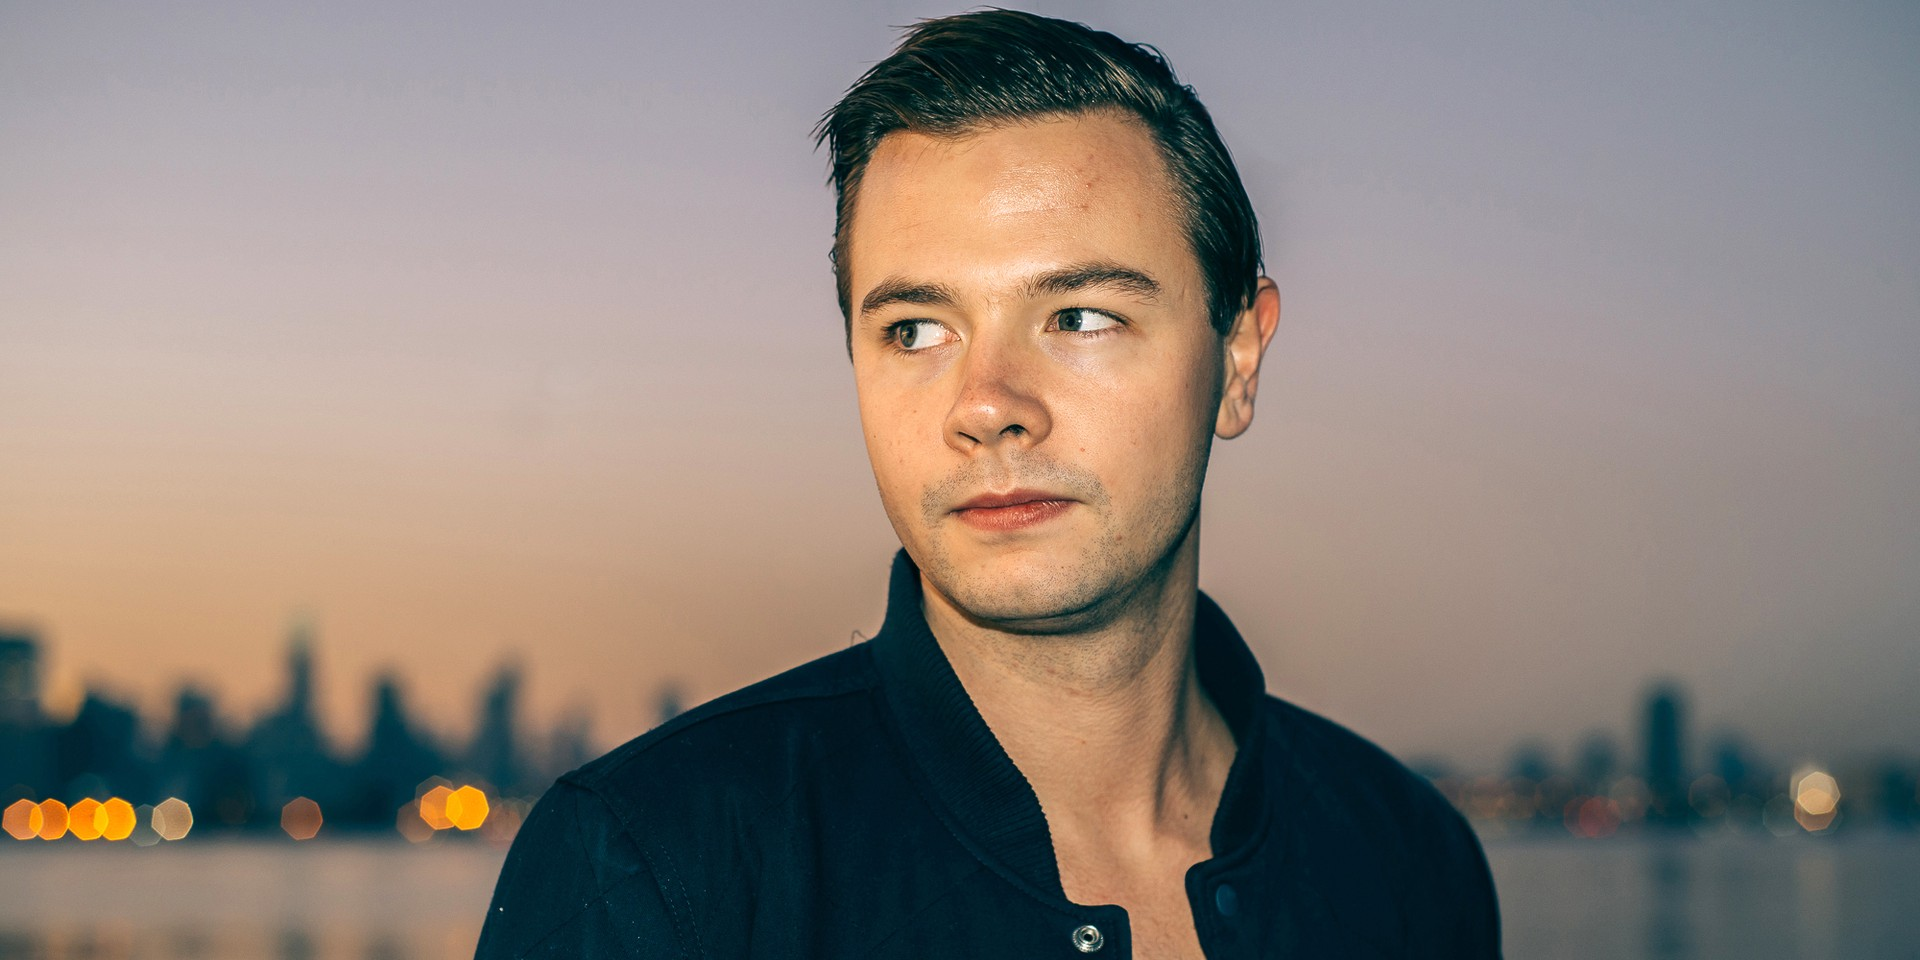 """""""The two worlds are beginning to blend together, dance music is now on the radio, and regular radio music is becoming heavily dance-influenced"""": A conversation with Sam Feldt"""